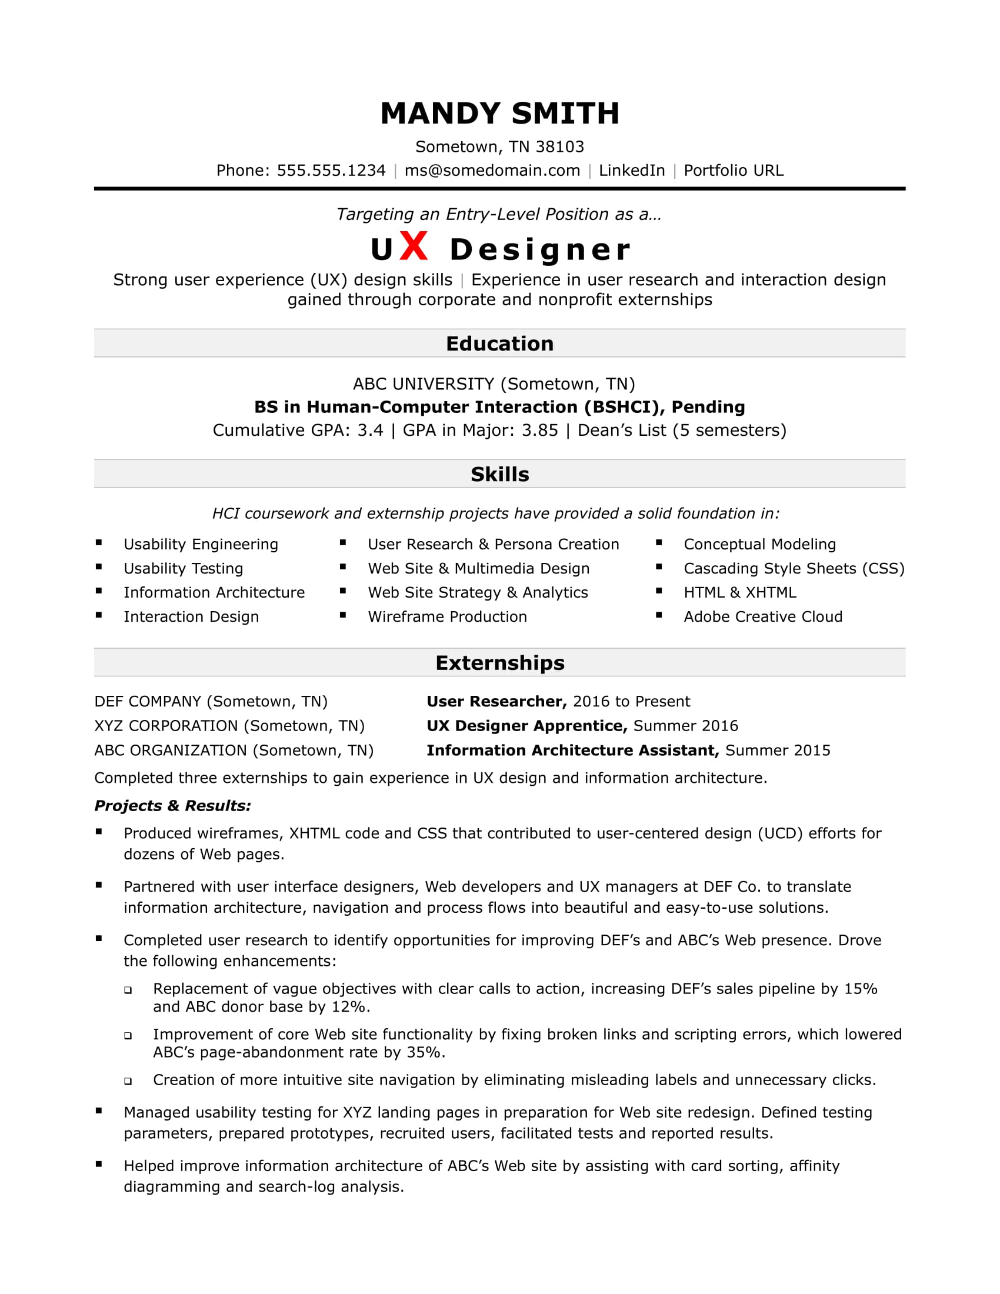 This sample resume shows how to create a compelling one